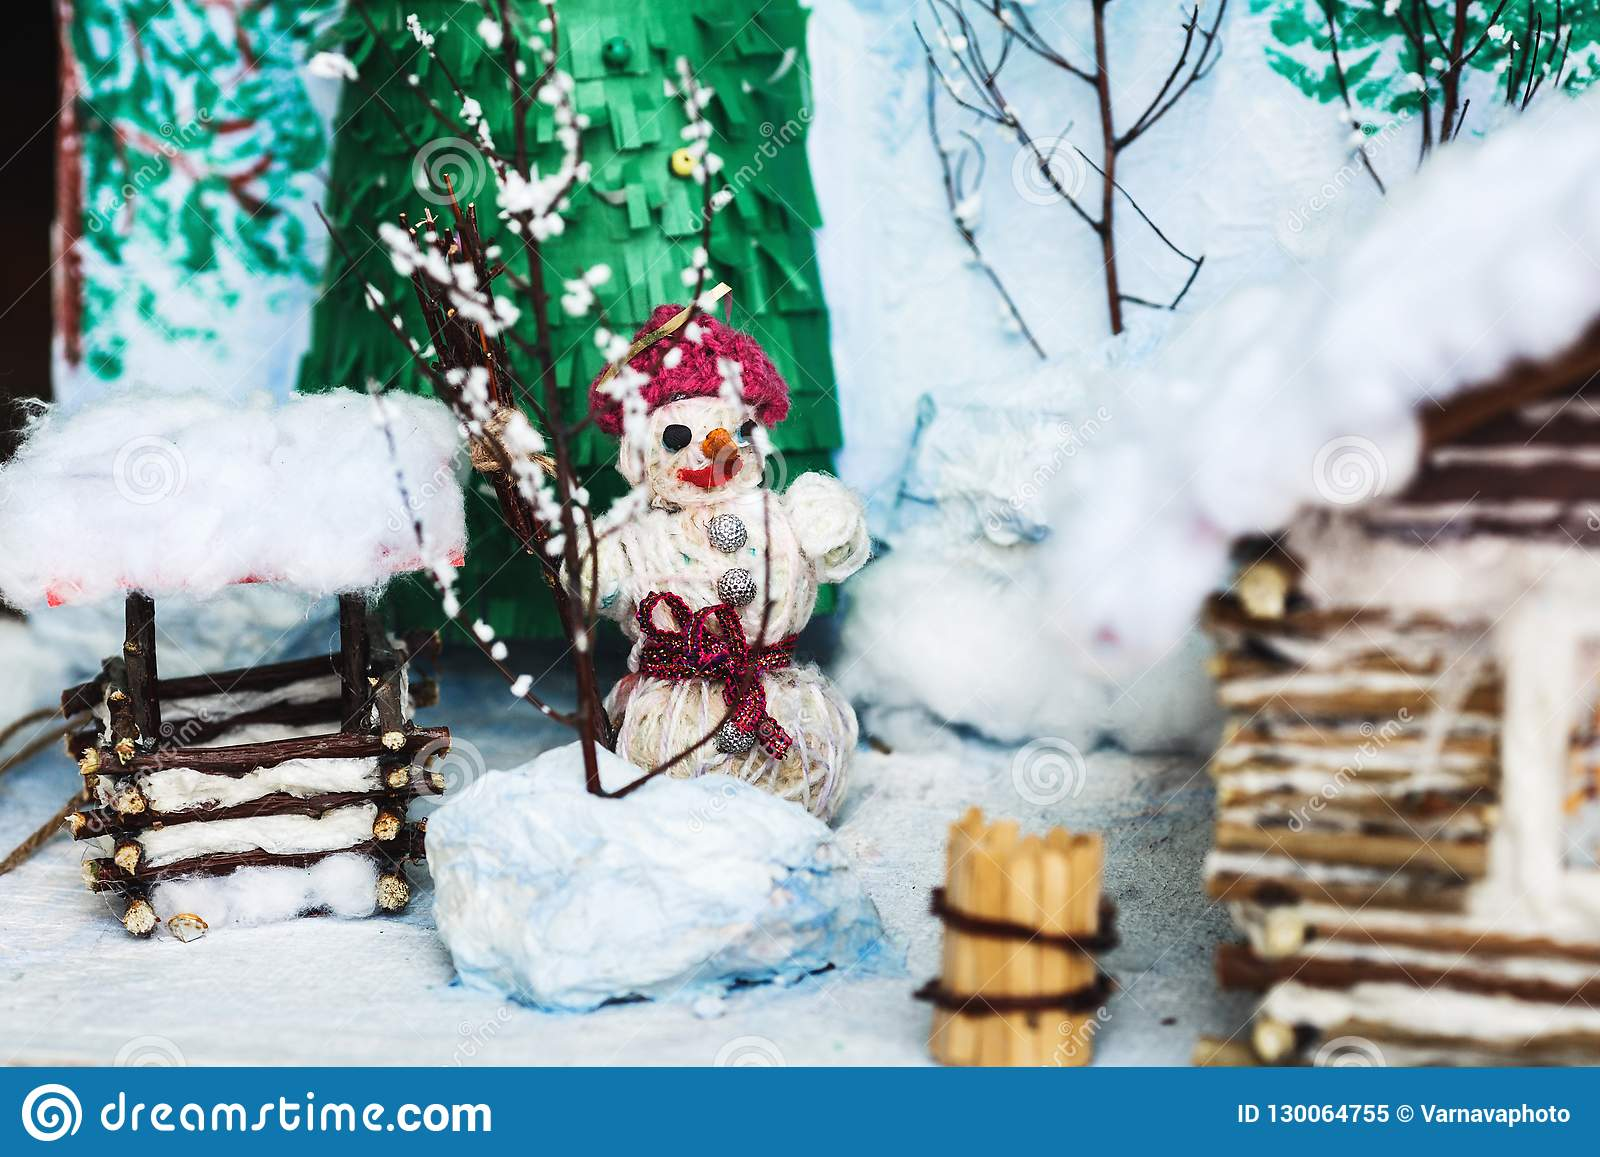 Children`s crafts of the winter yard in the snow: house, trees, well, snowman.